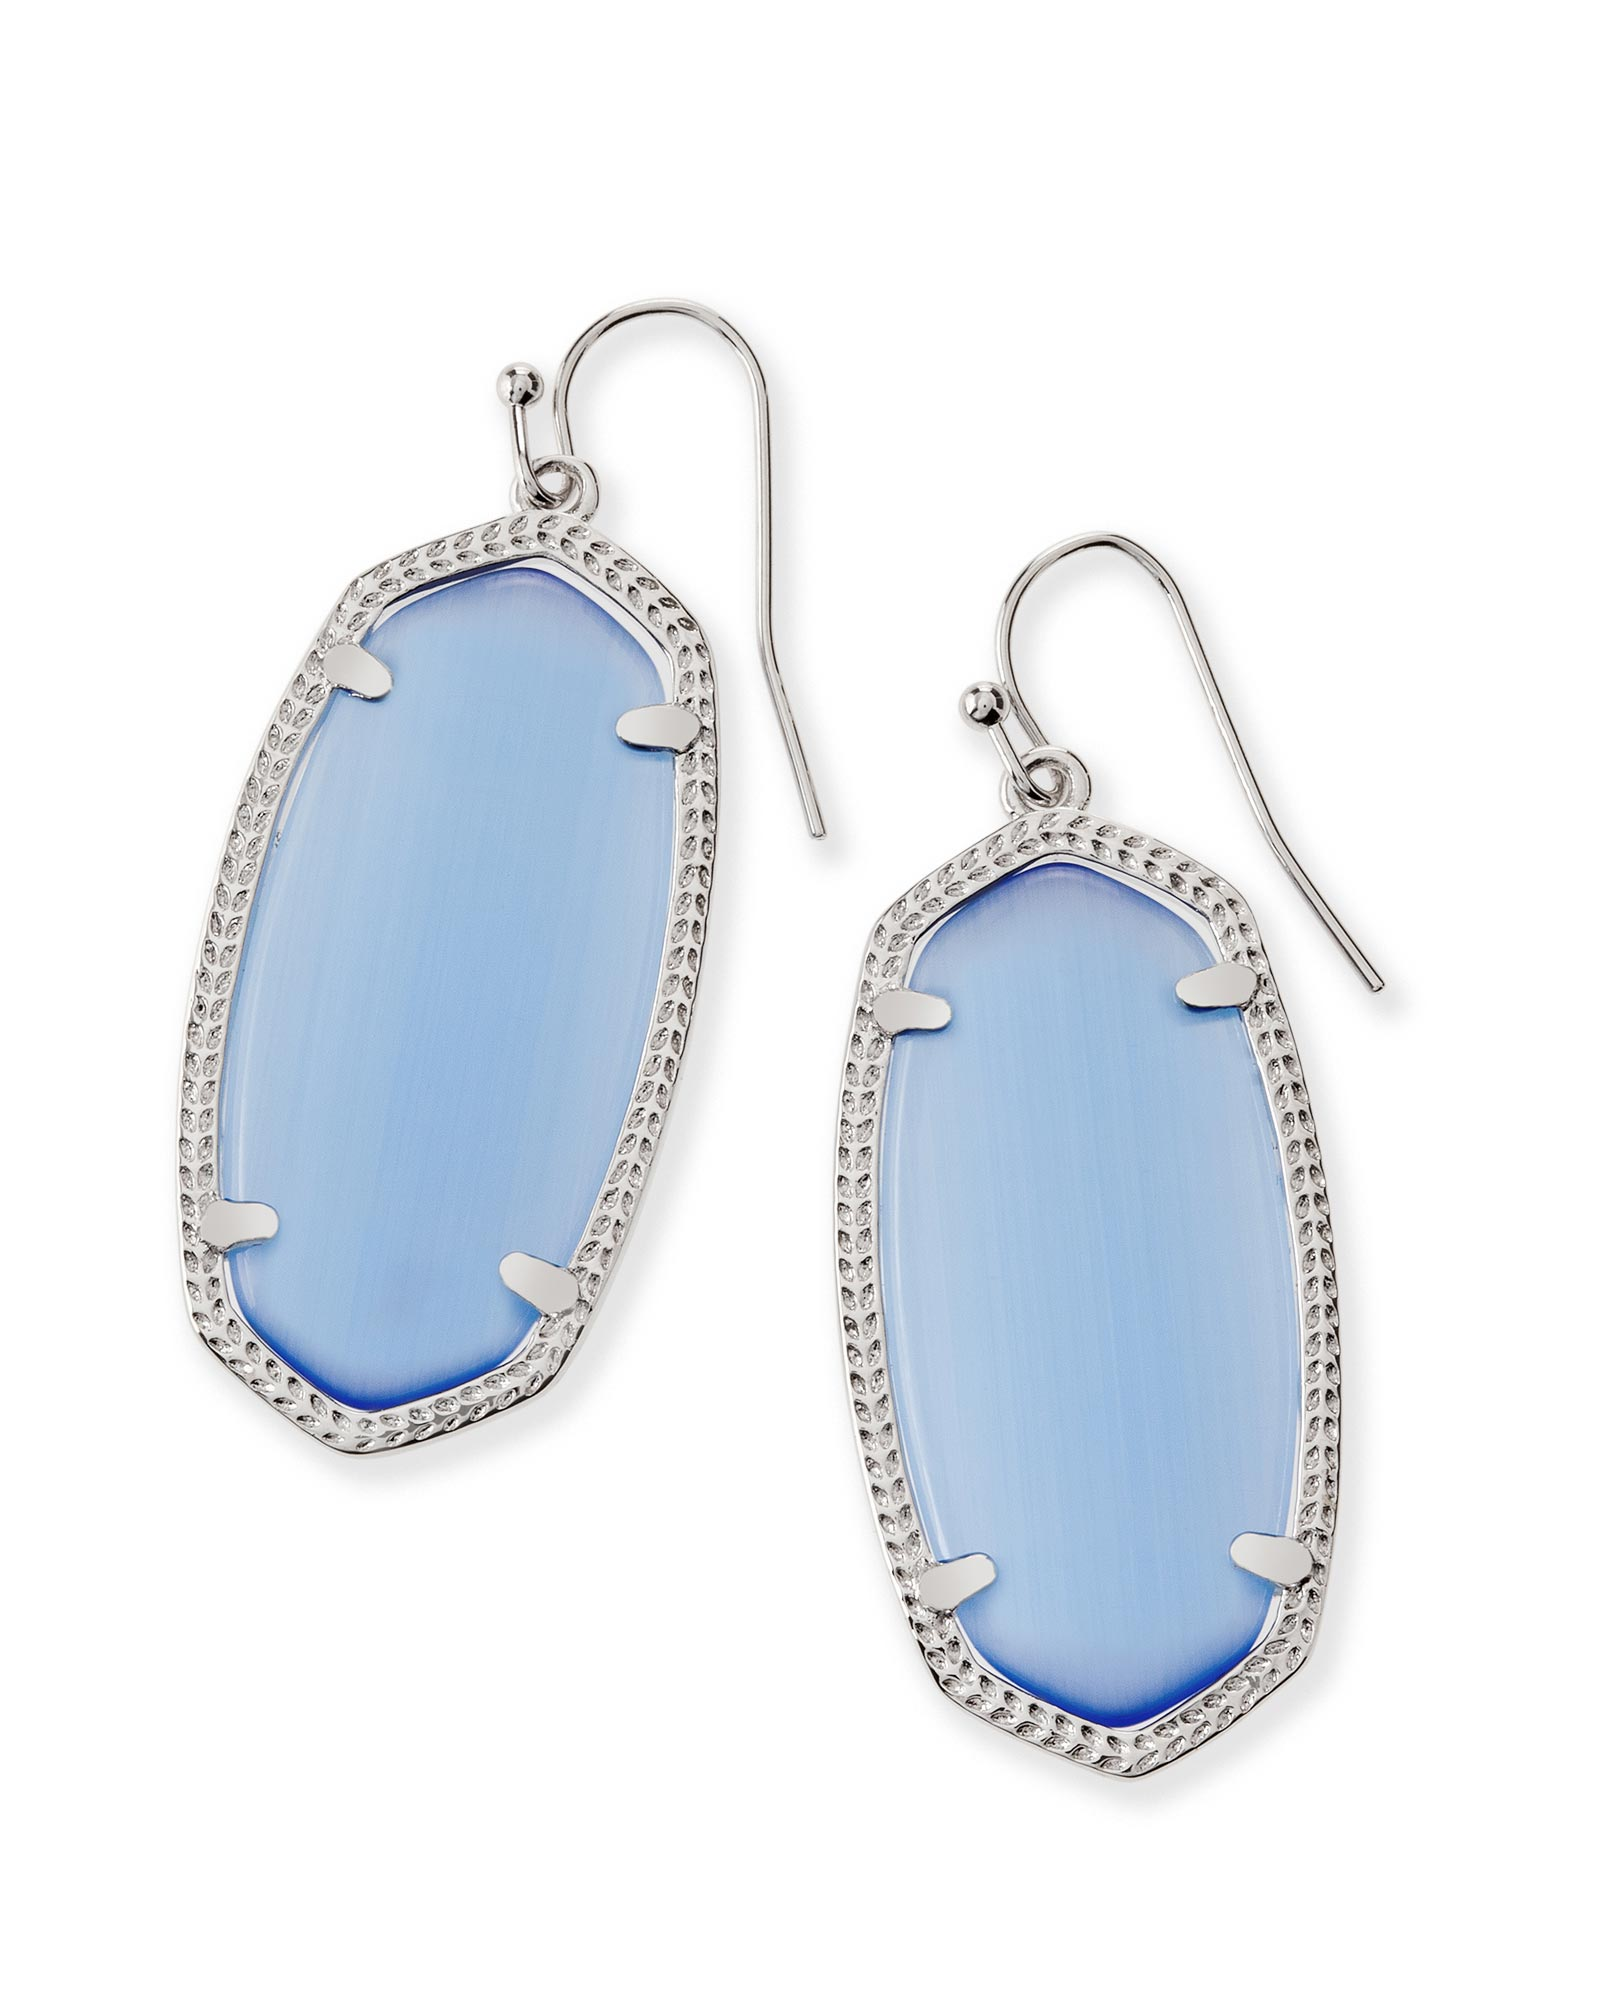 75a98aa31 Elle Silver Drop Earrings In Periwinkle Cats Eye| Kendra Scott